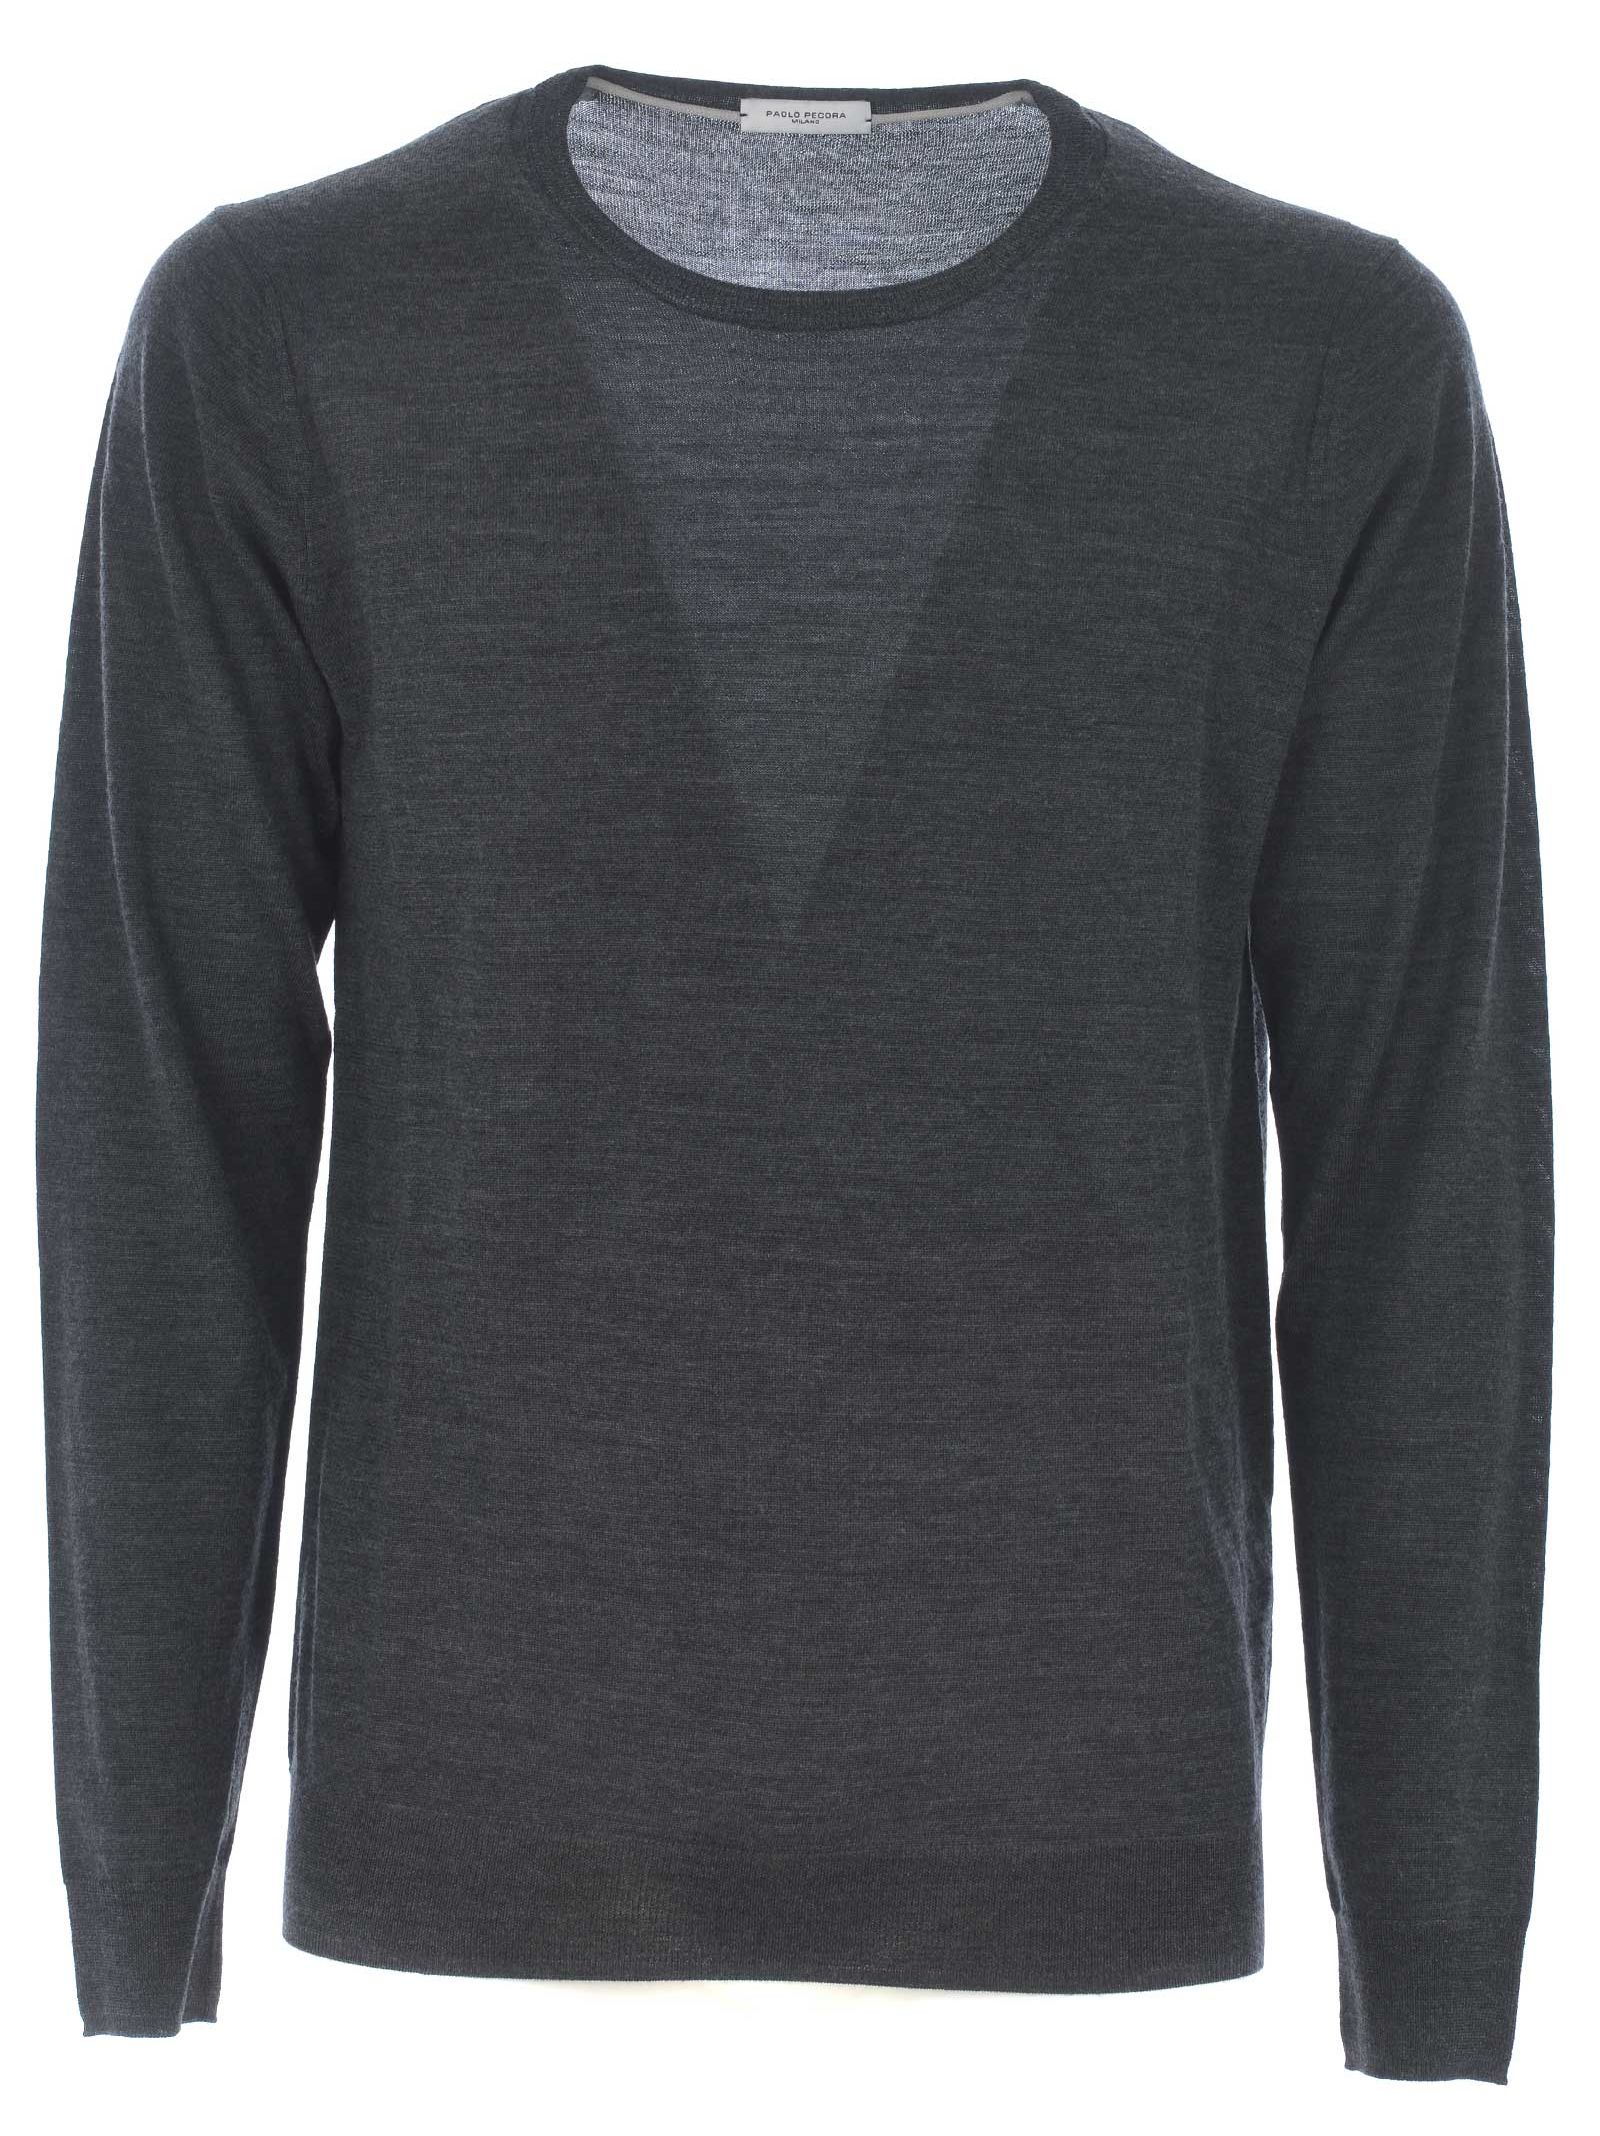 Paolo Pecora Fitted Sweater